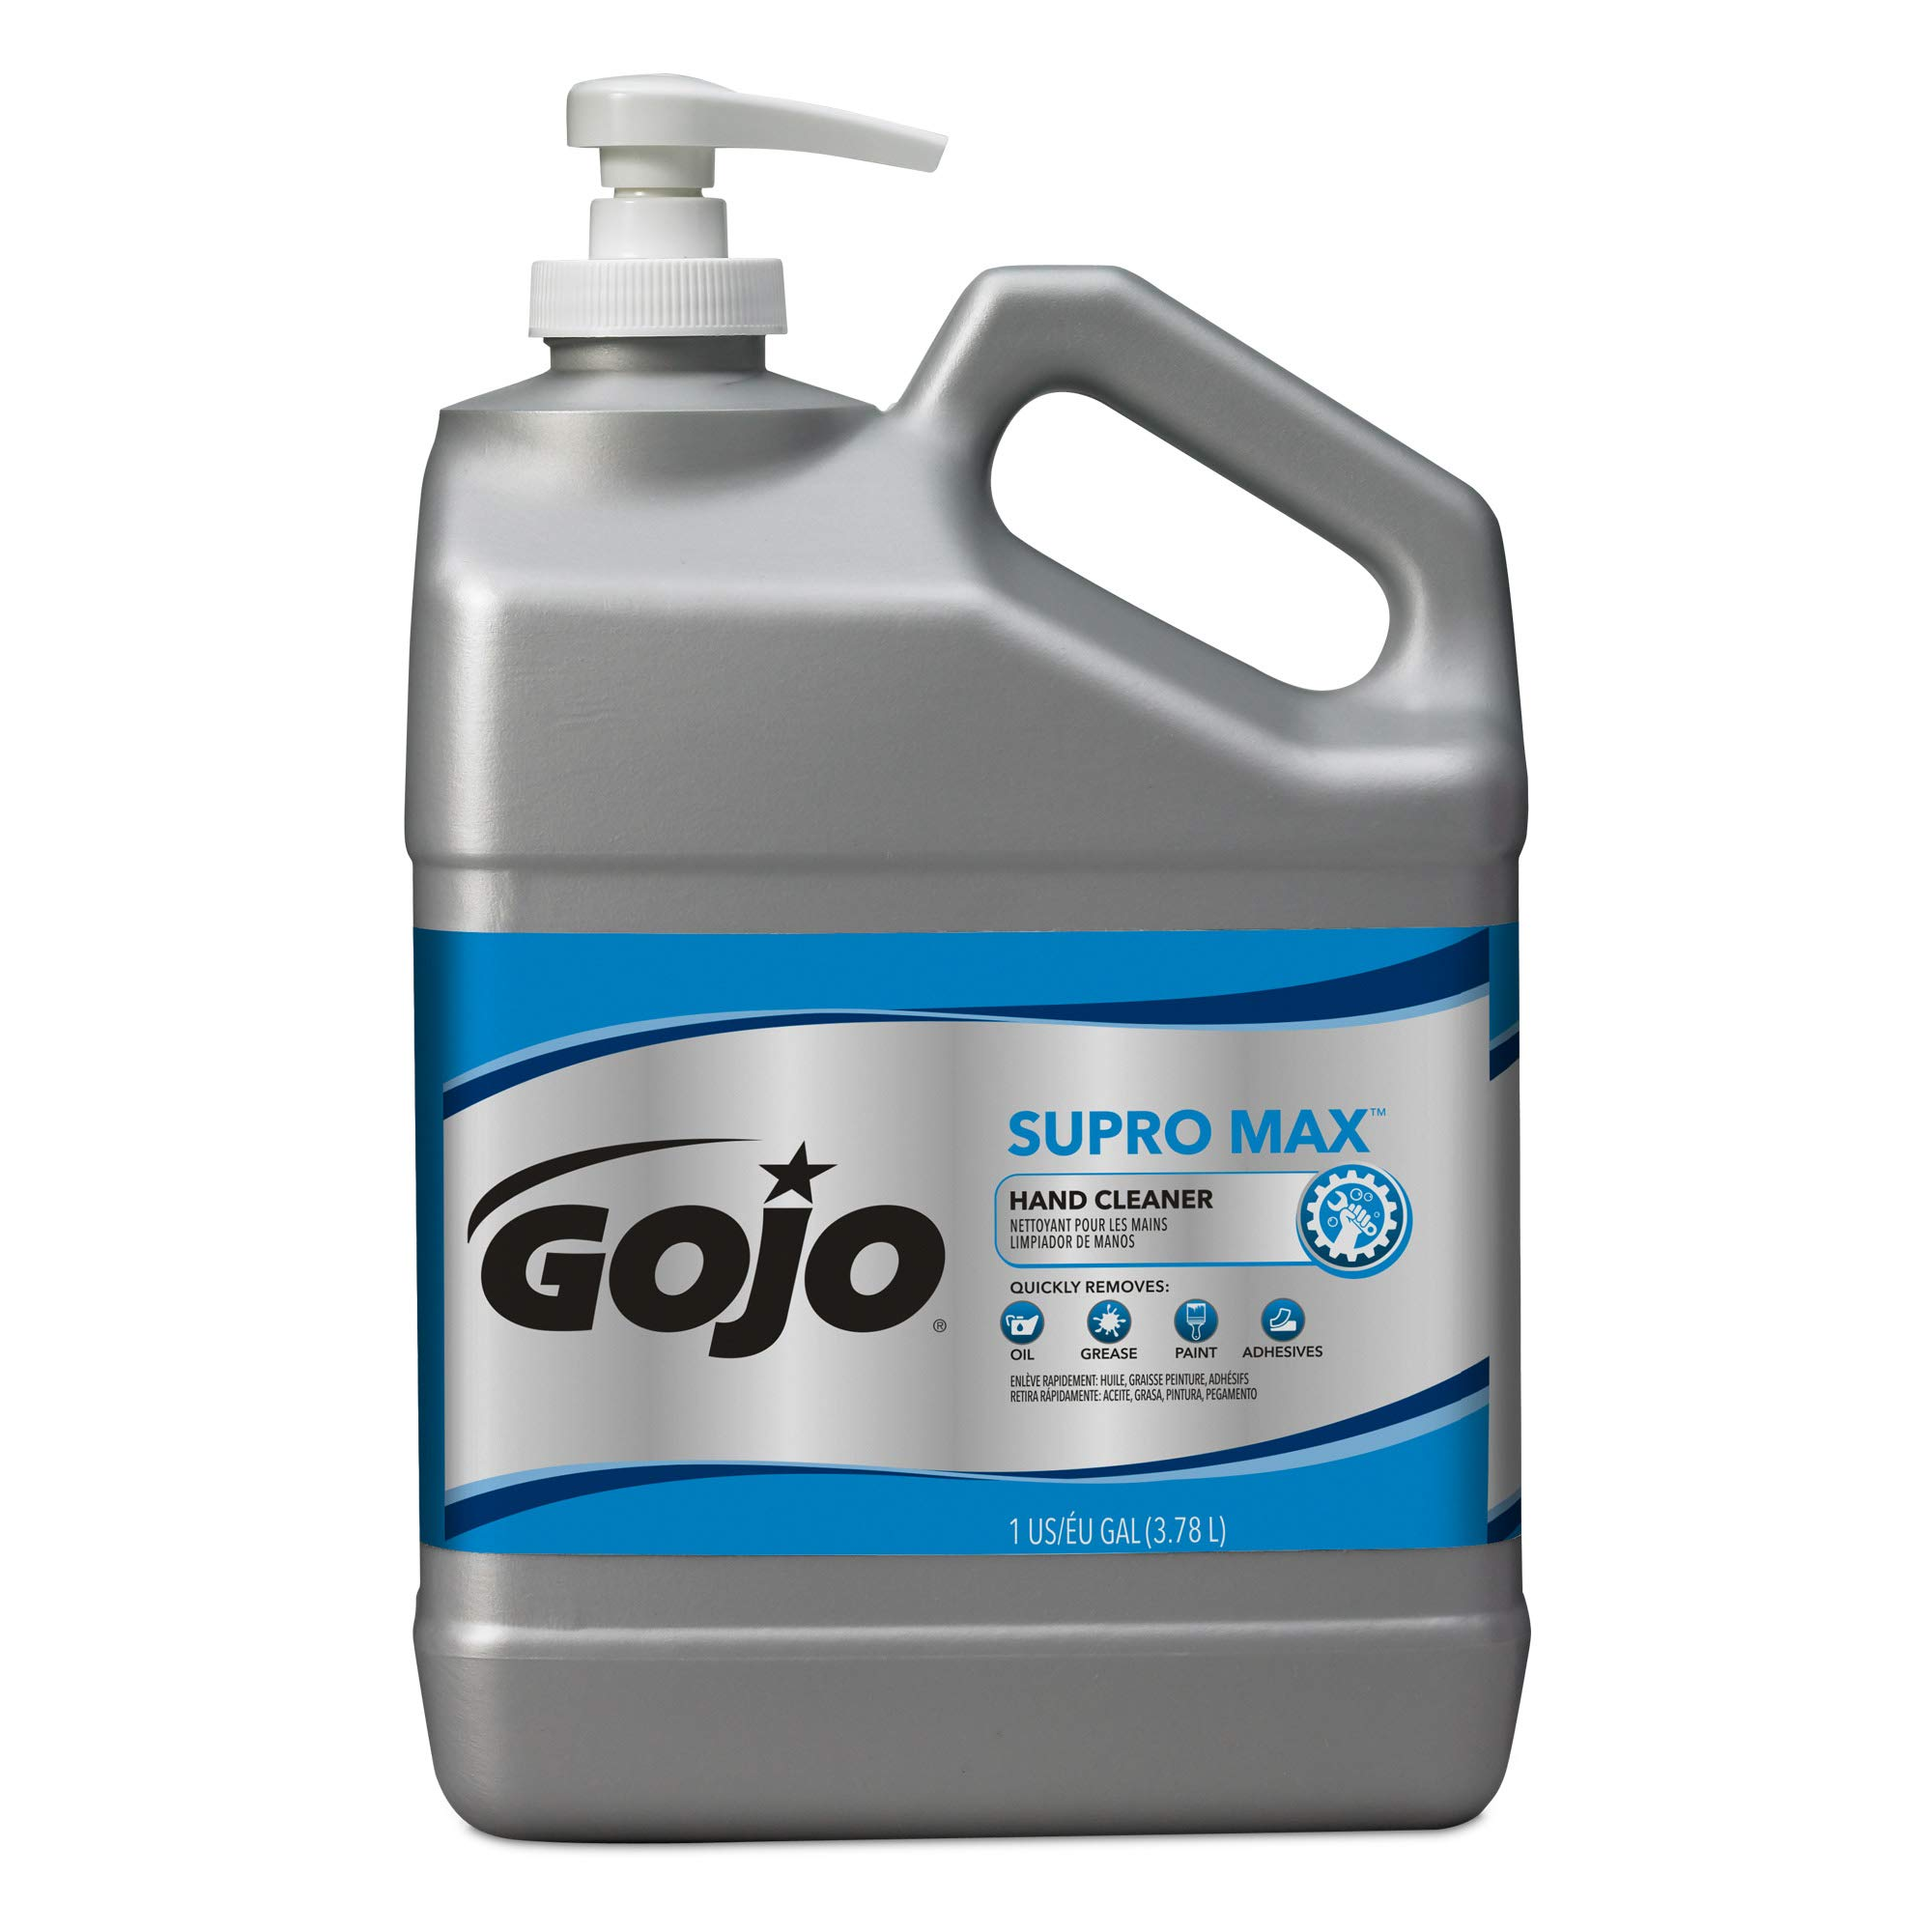 GOJO SUPRO MAX Hand Cleaner, 1 Gallon Heavy-Duty Hand Cleaner with Scrubbers Pump Bottles (Pack of 2) – 0979-02 by Gojo (Image #2)